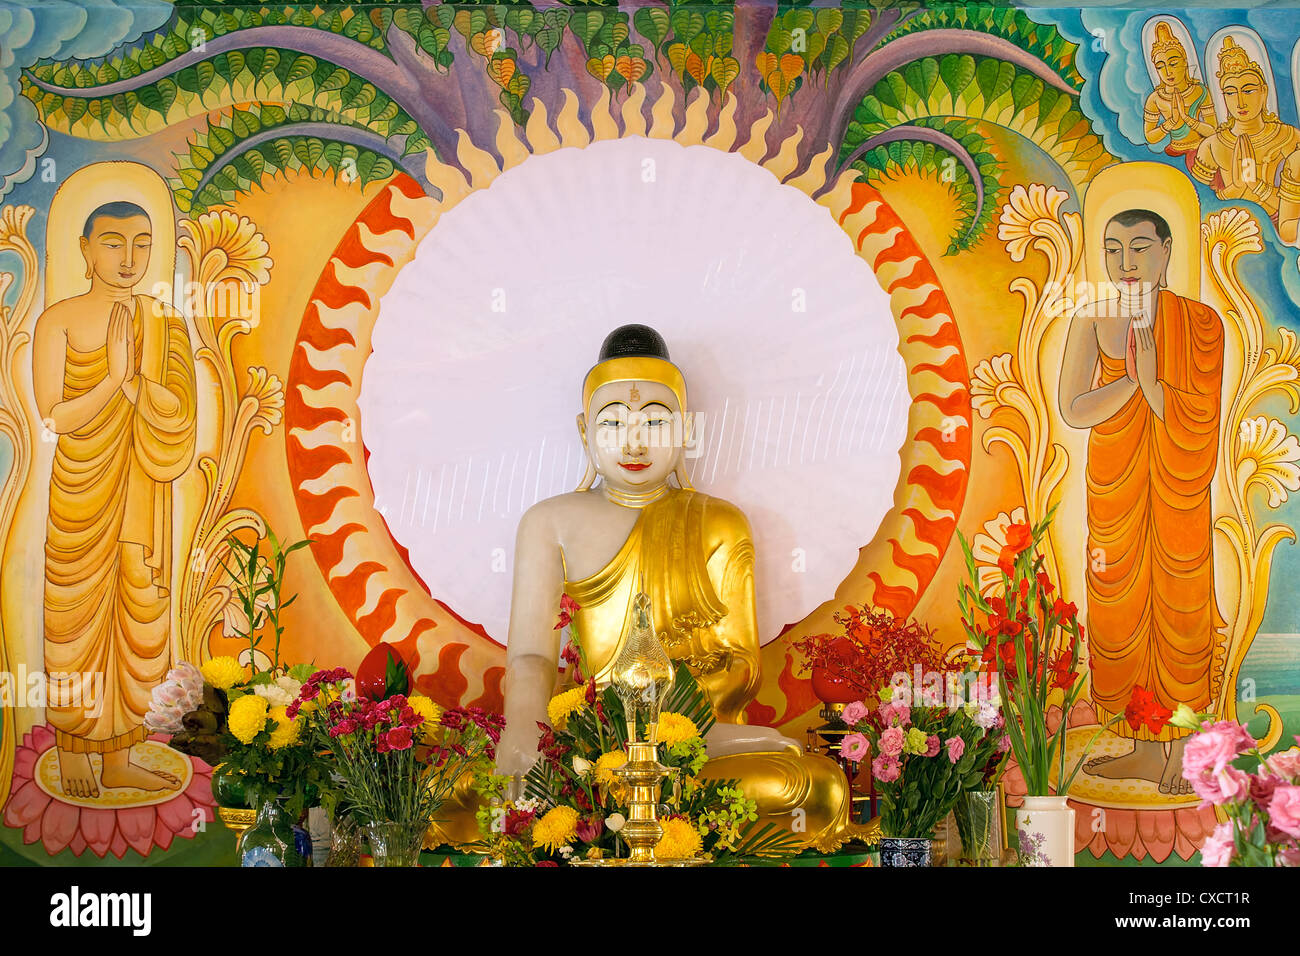 Enlightened Buddha Statue Sitting Under the Bodhi Tree with Painted Mural Background Stock Photo